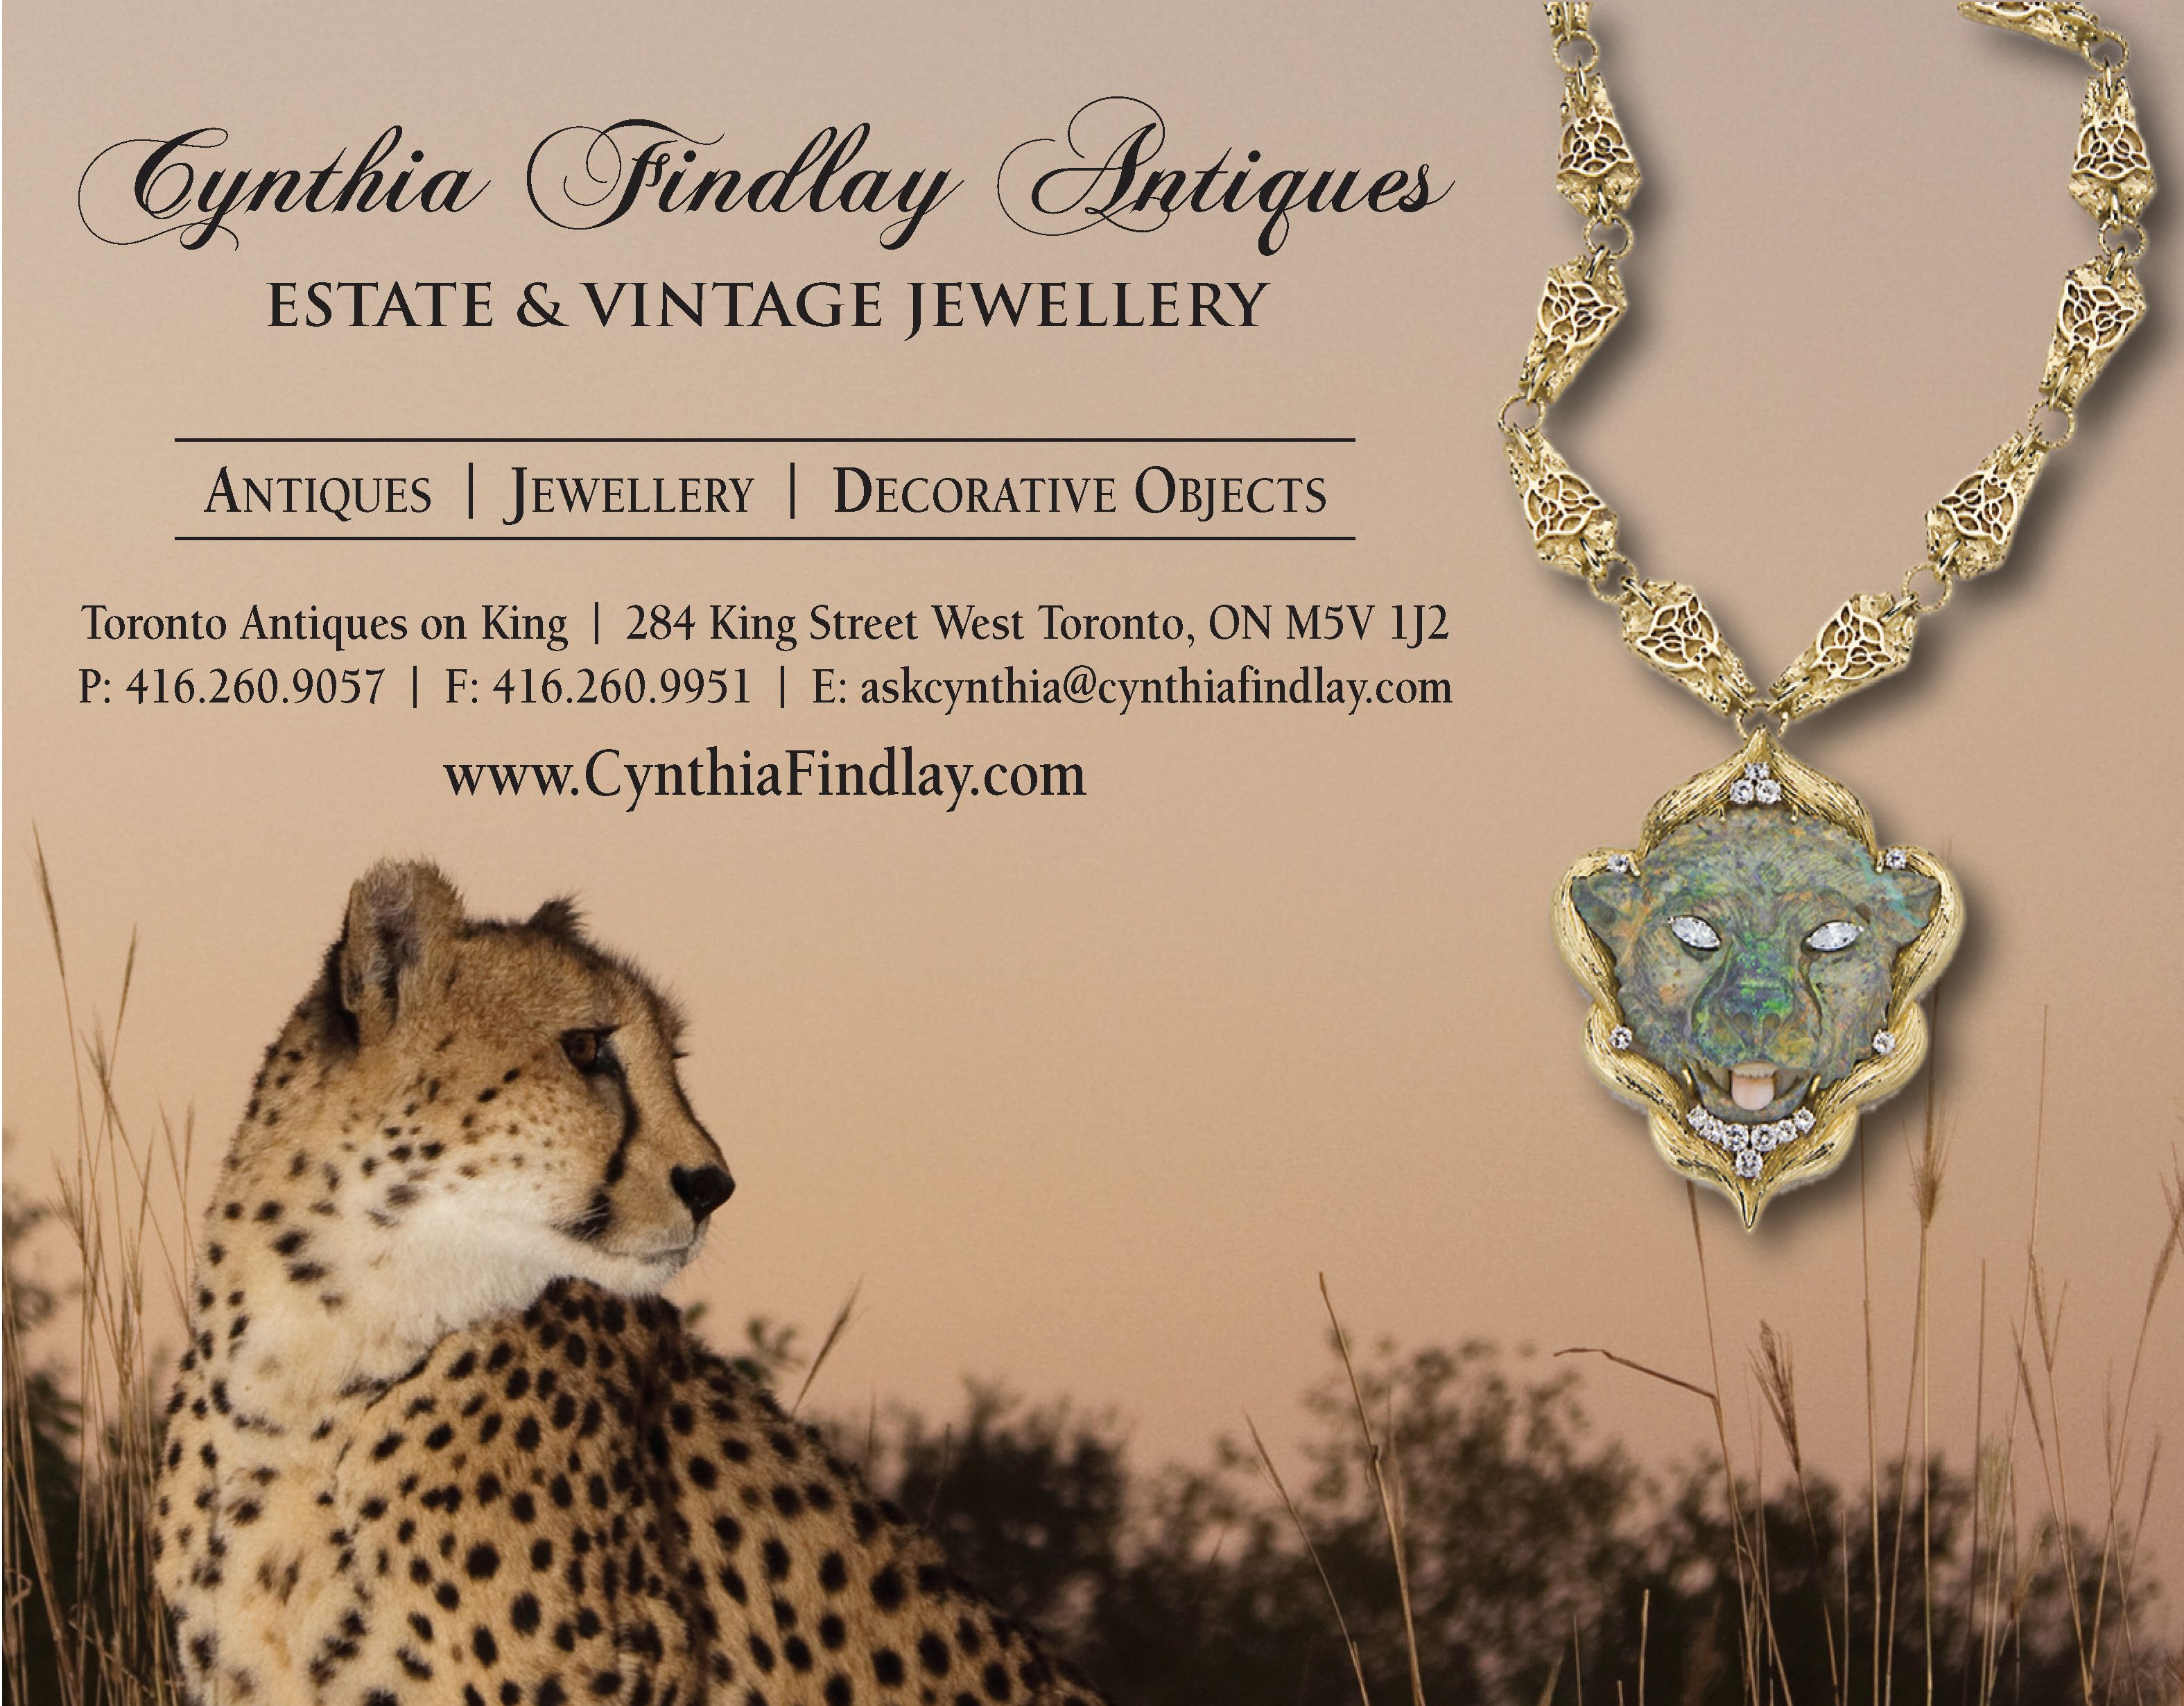 Cynthia Findlay Antiques Advertisement Design GraphicDesign